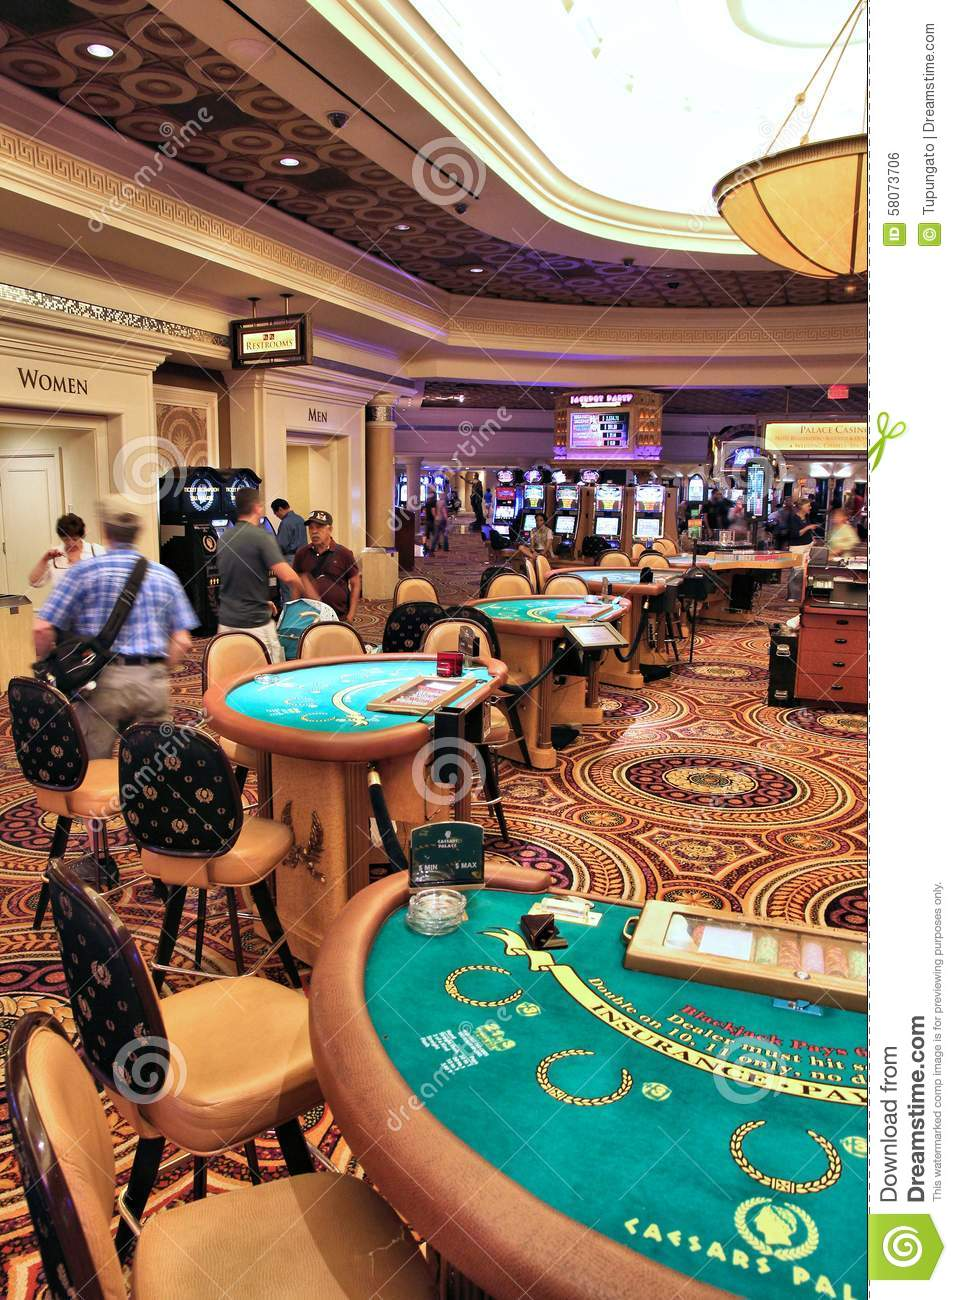 Where are the cheapest blackjack tables in vegas sodapoppin blackjack website